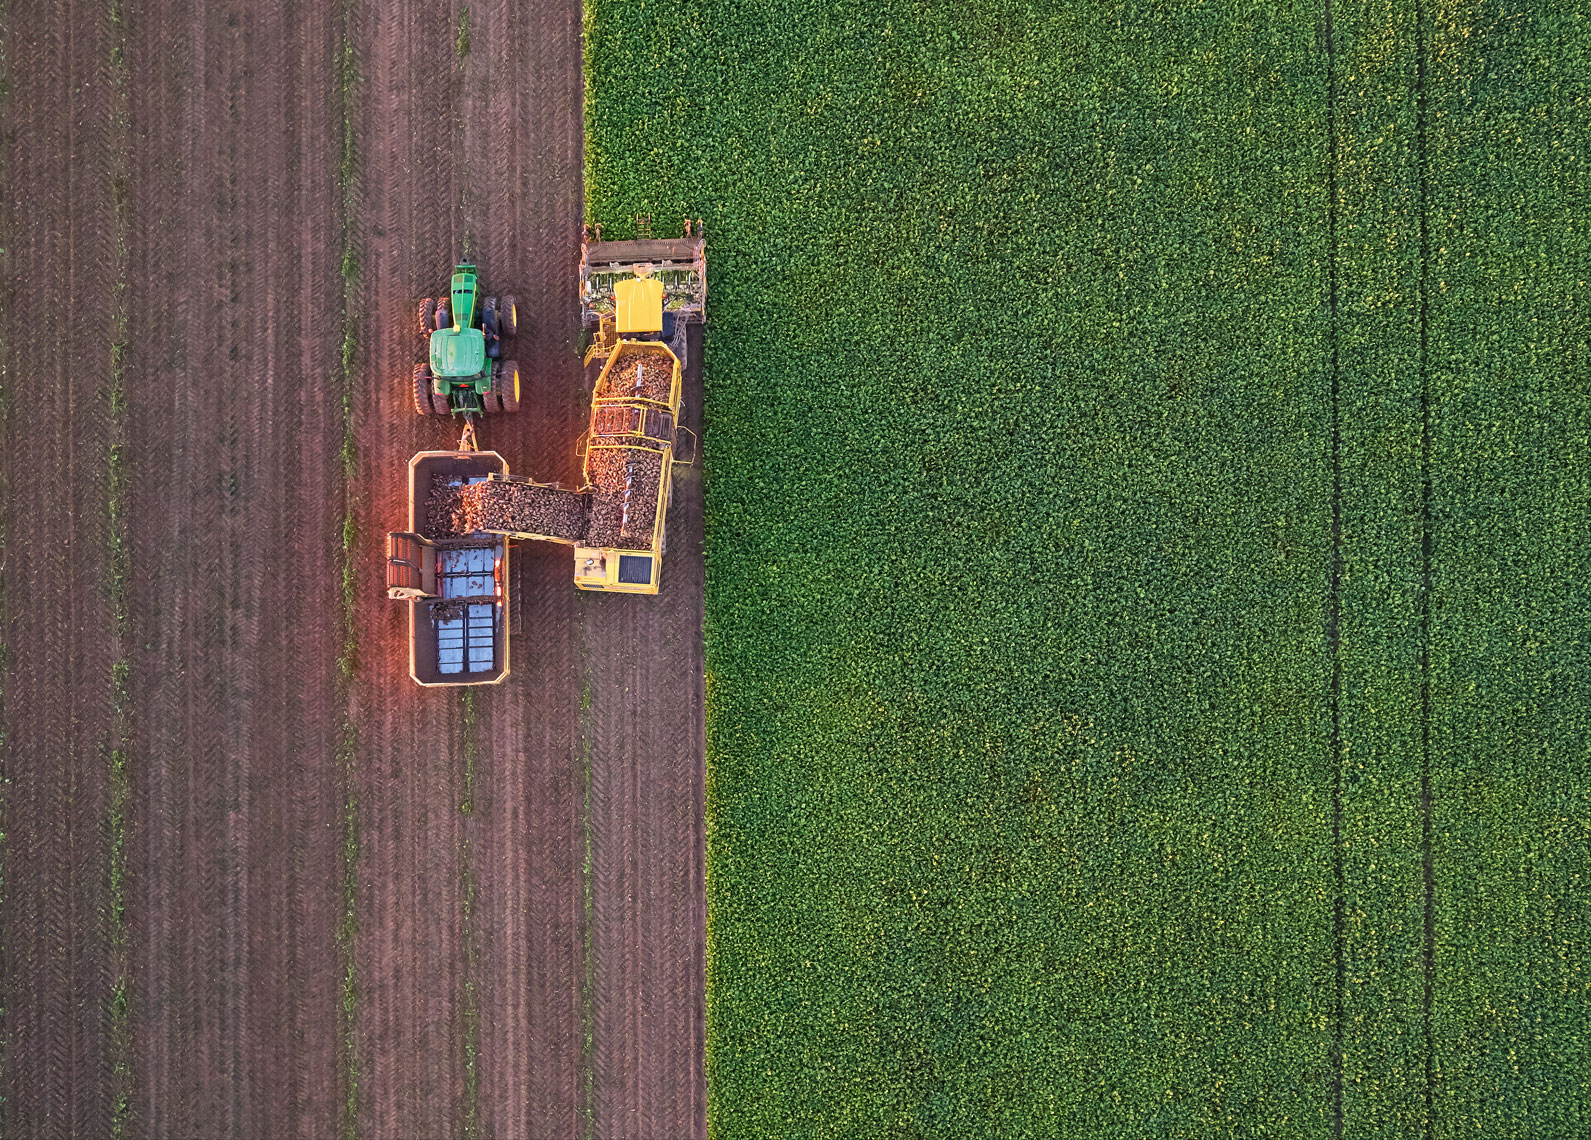 Sugar beet harvest/Michigan/arial drone photography